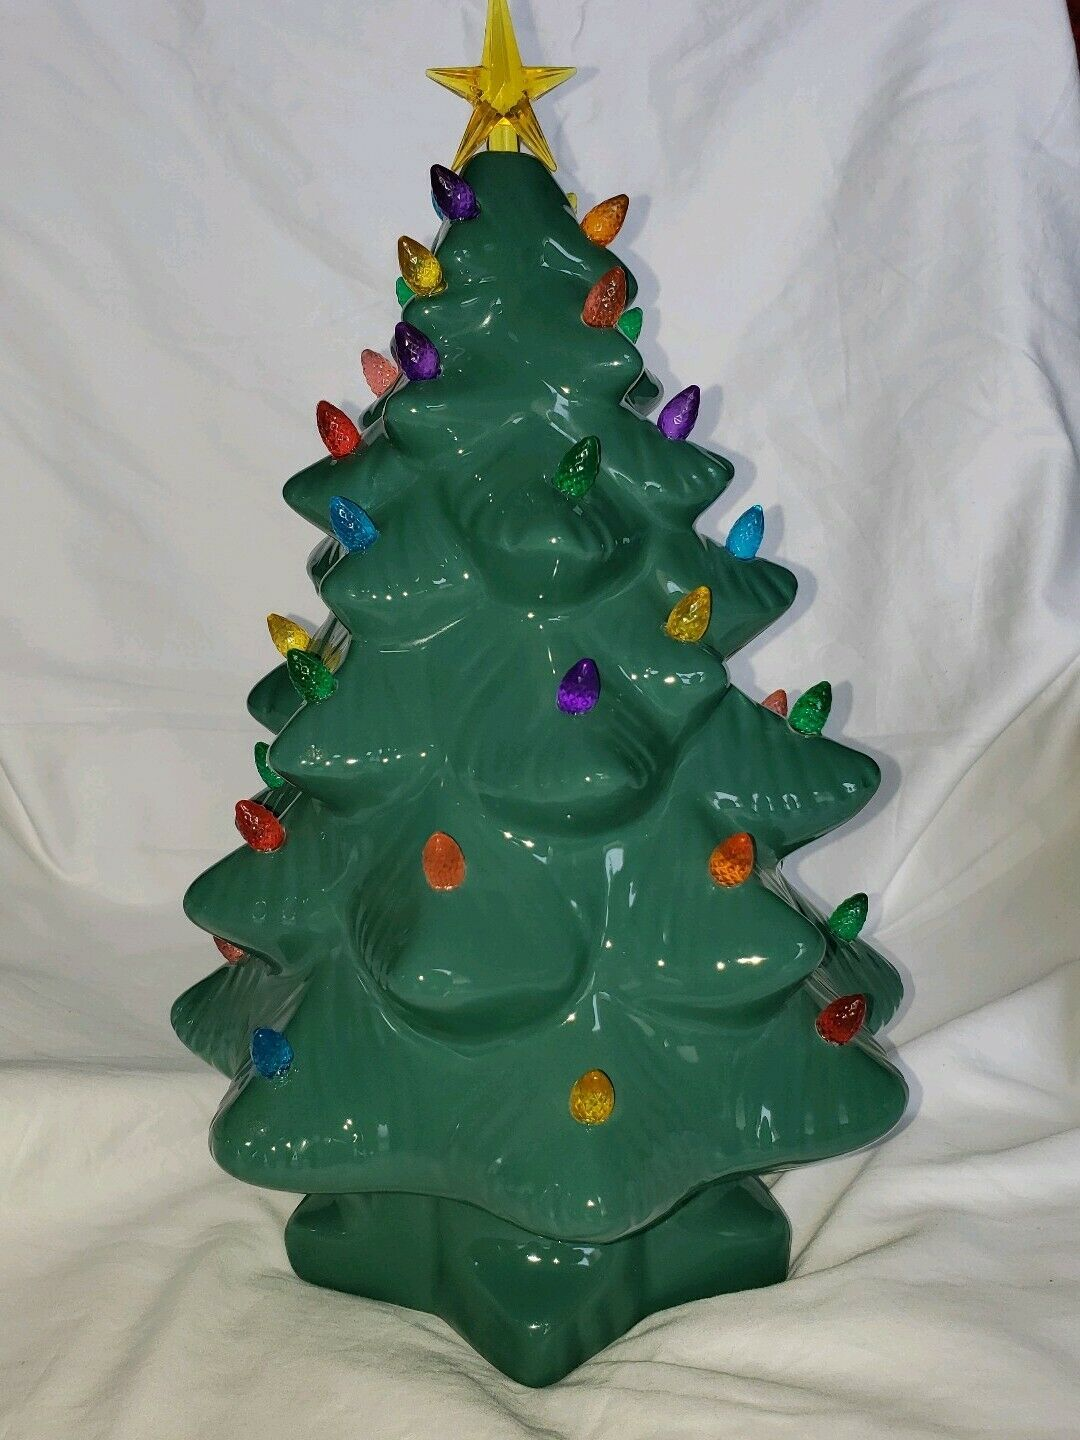 Primary image for Mr. Christmas Nostalgic Porcelain Green LED Christmas Tree 15 Inches Tall